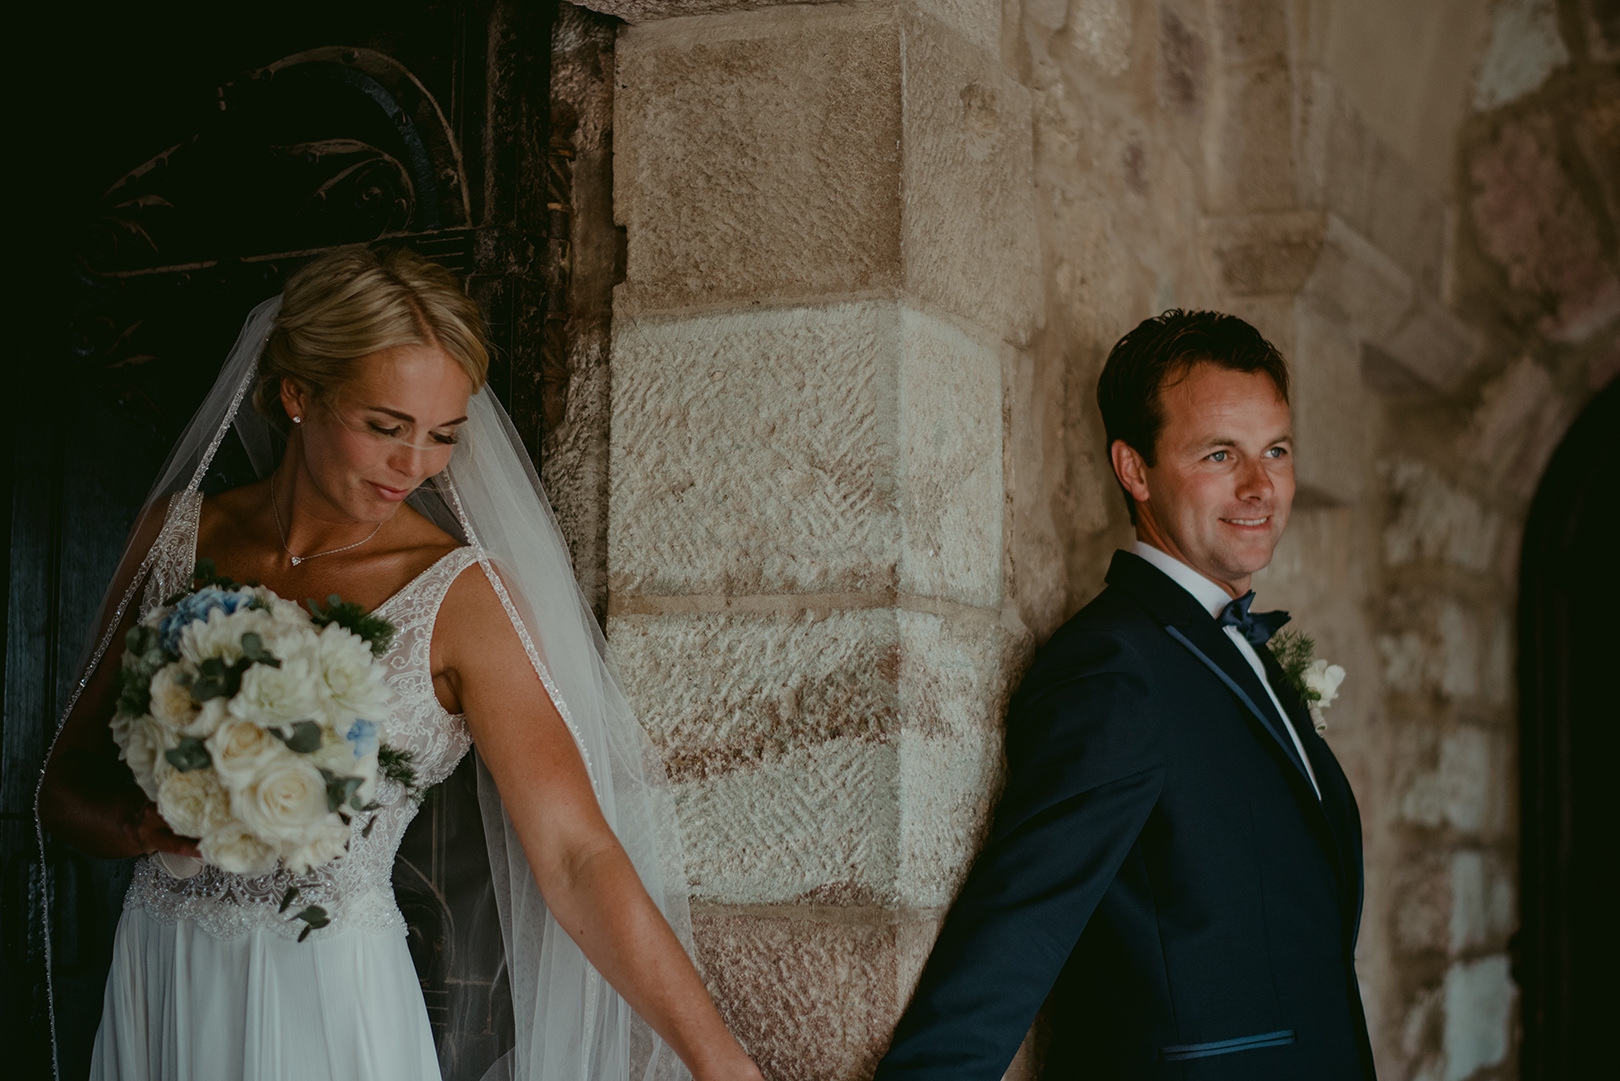 Bride and groom meeting at Chateau de la Napoule in Cannes